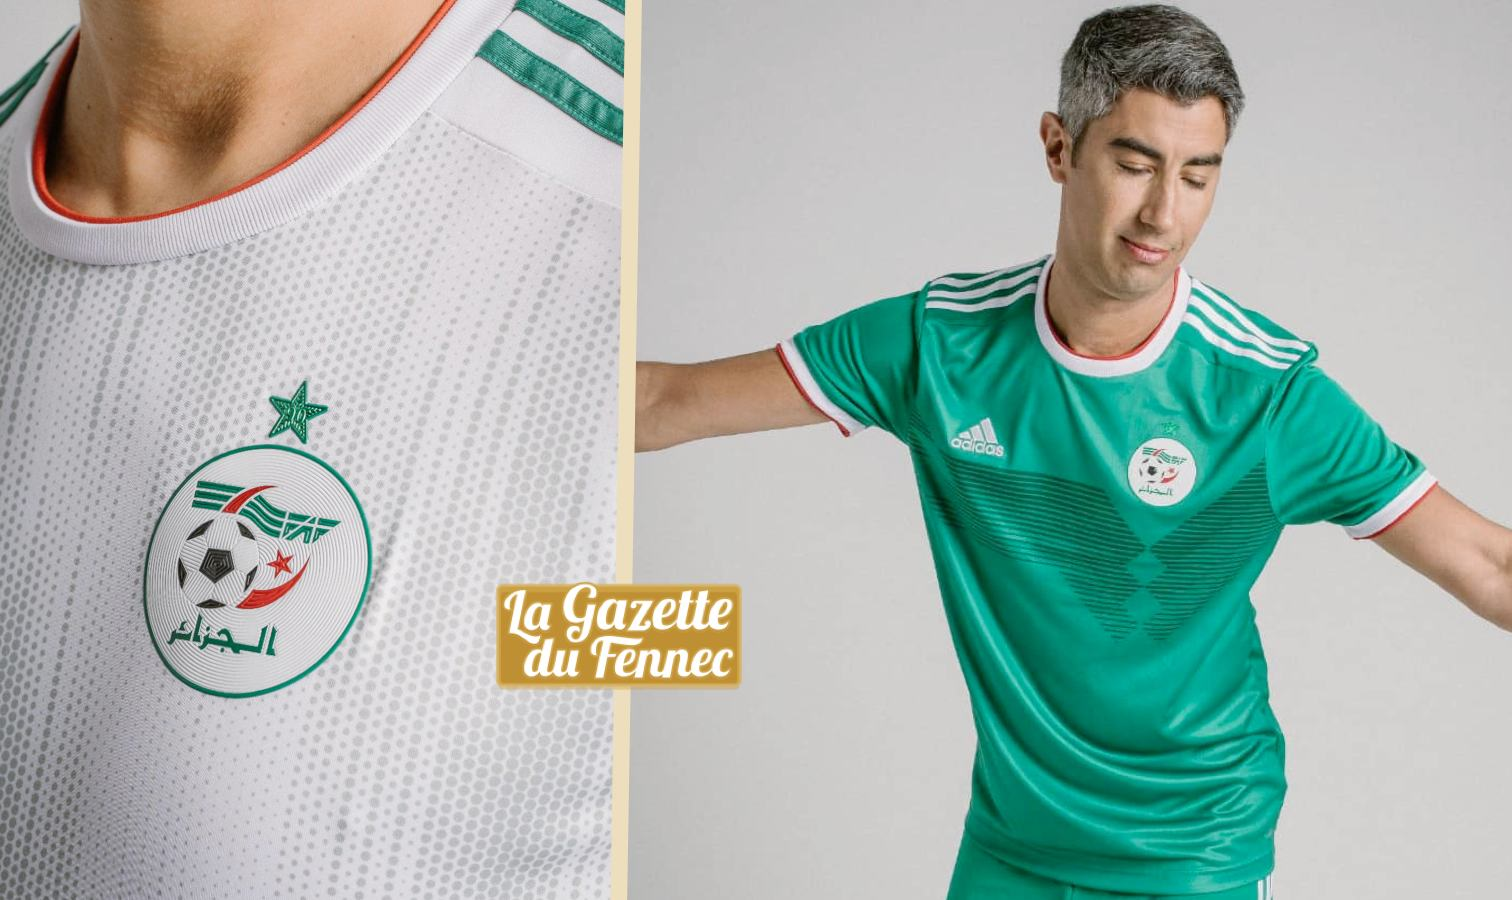 maillot algerie adidas